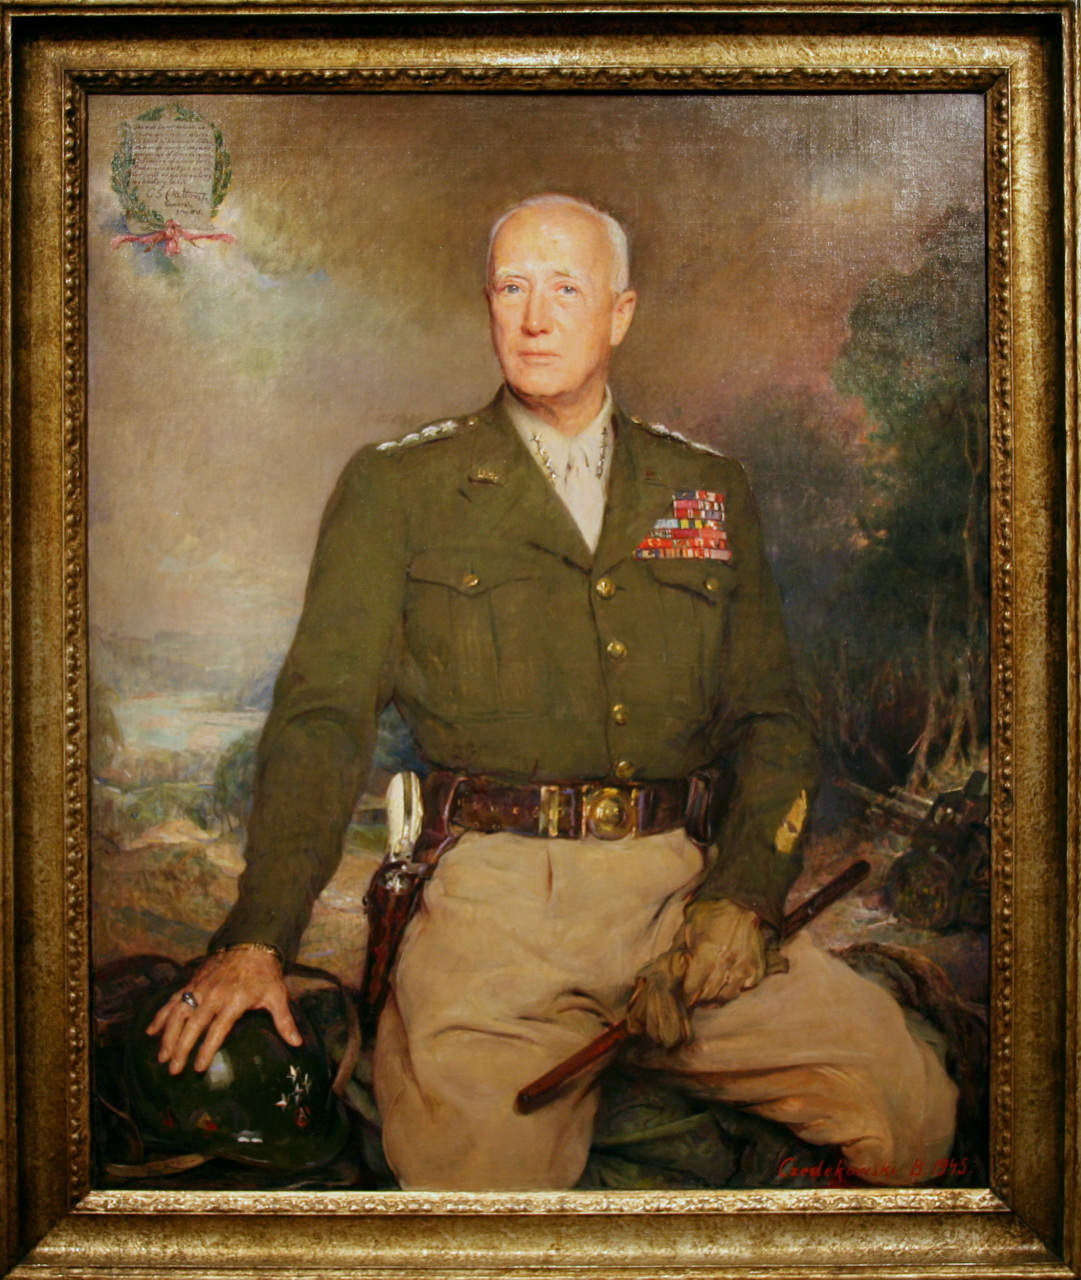 george smith patton jr 10 results visit amazoncom's george s patton page and shop for all george s patton books check out pictures, bibliography, and biography of george s patton.